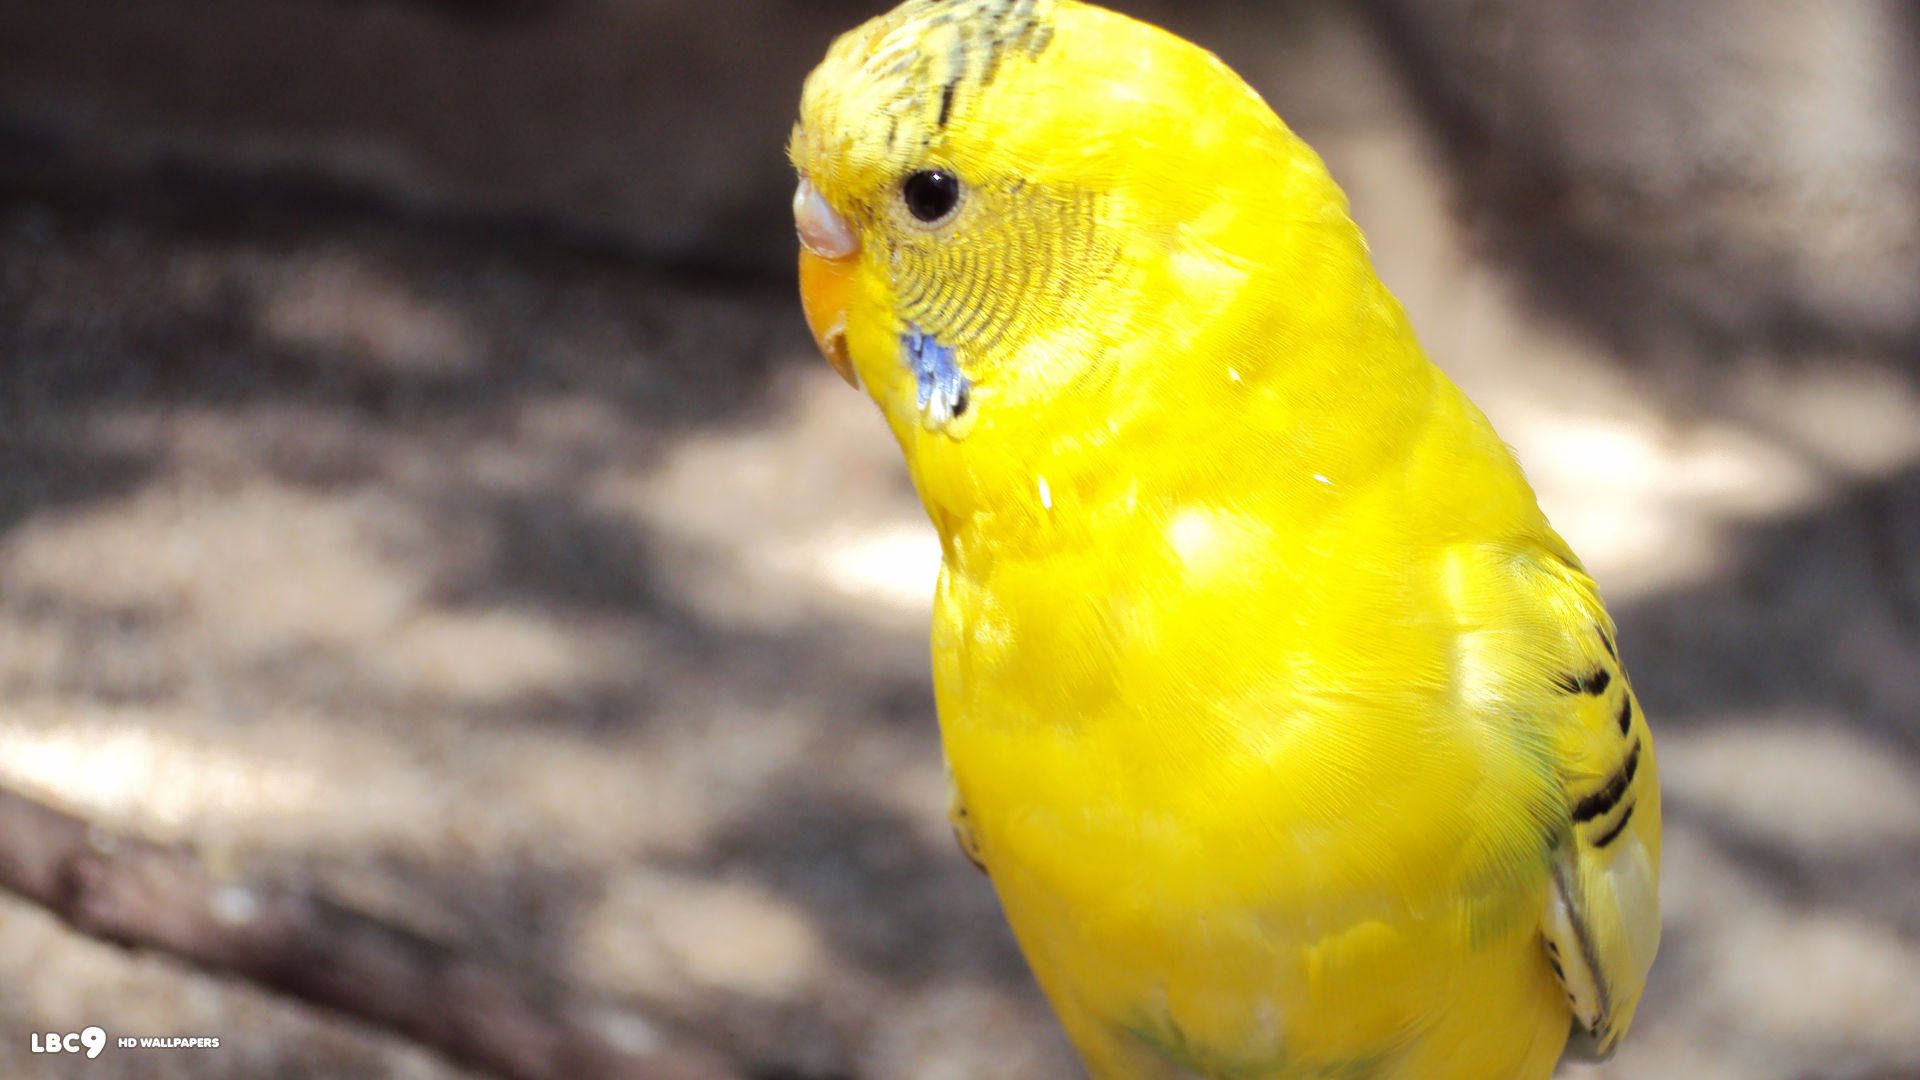 A yellow parakeet